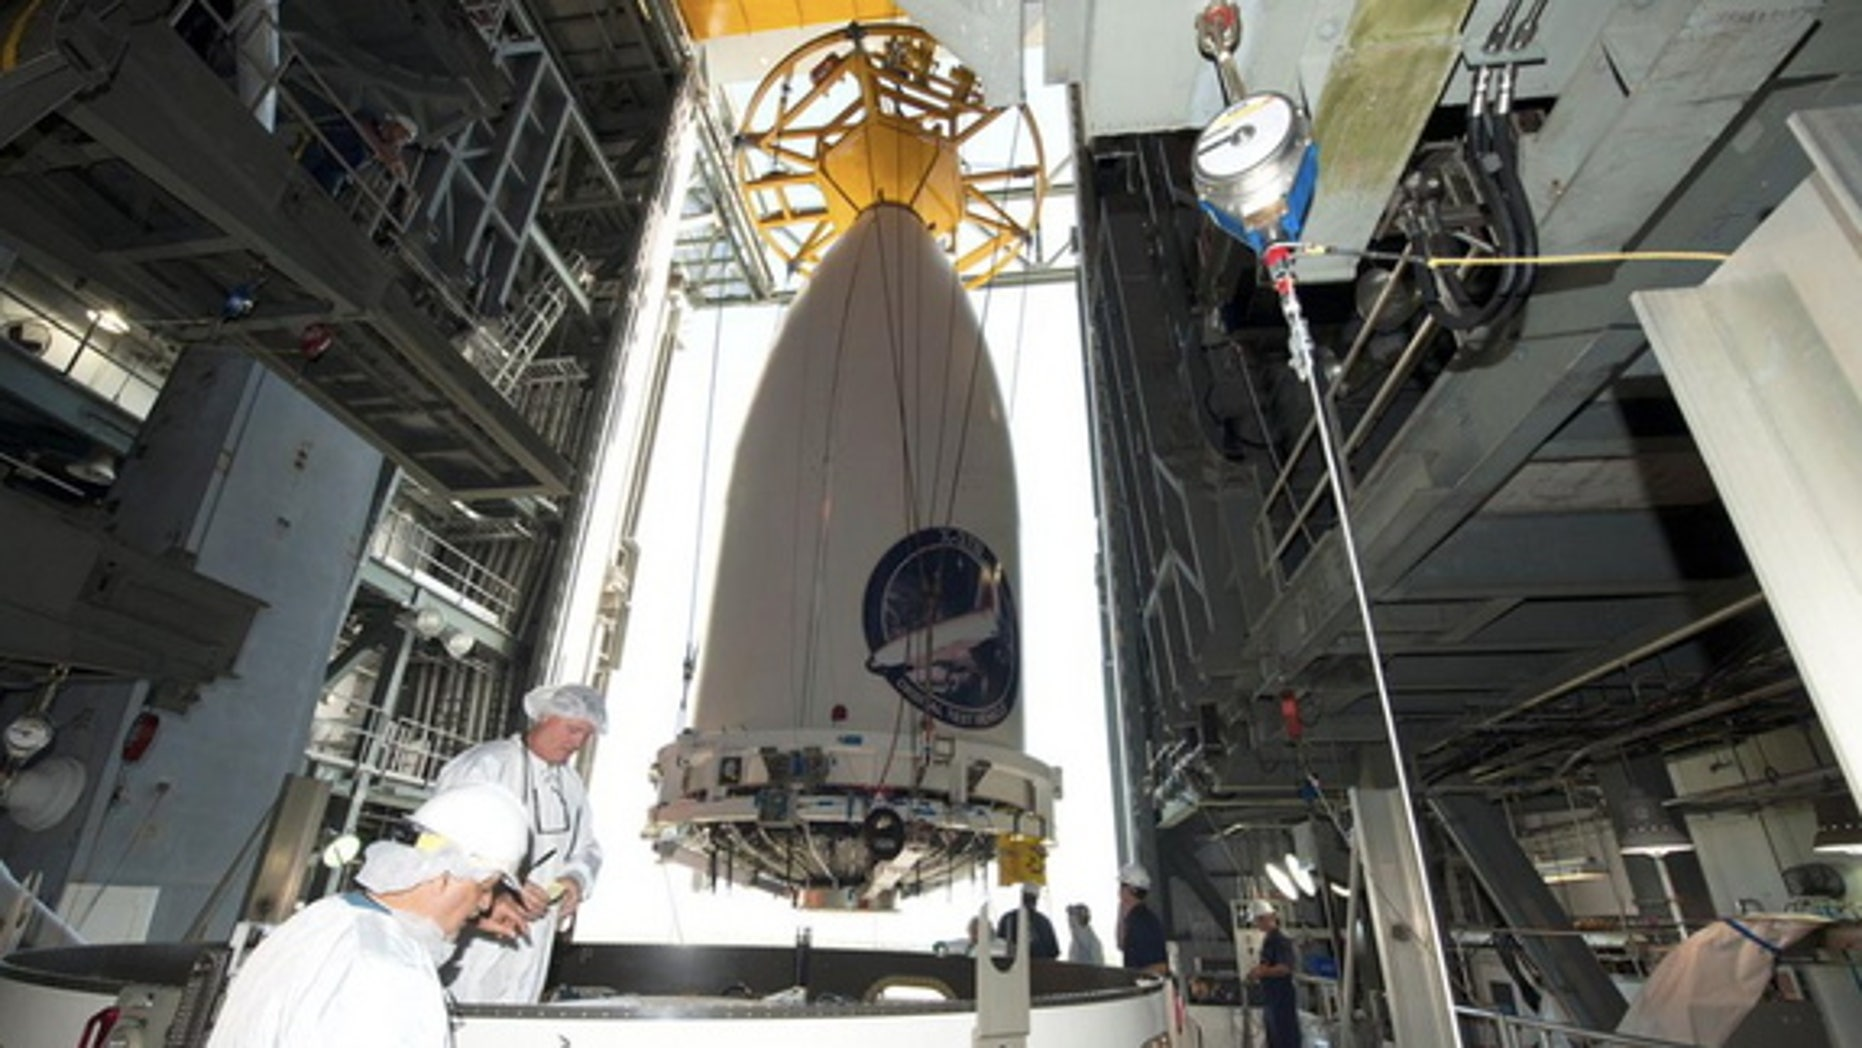 The Air Force's robotic X-37B space plane, encapsulated in its fairing, being readied for attachment to its Atlas V rocket ahead of a planned May 20, 2015 launch.